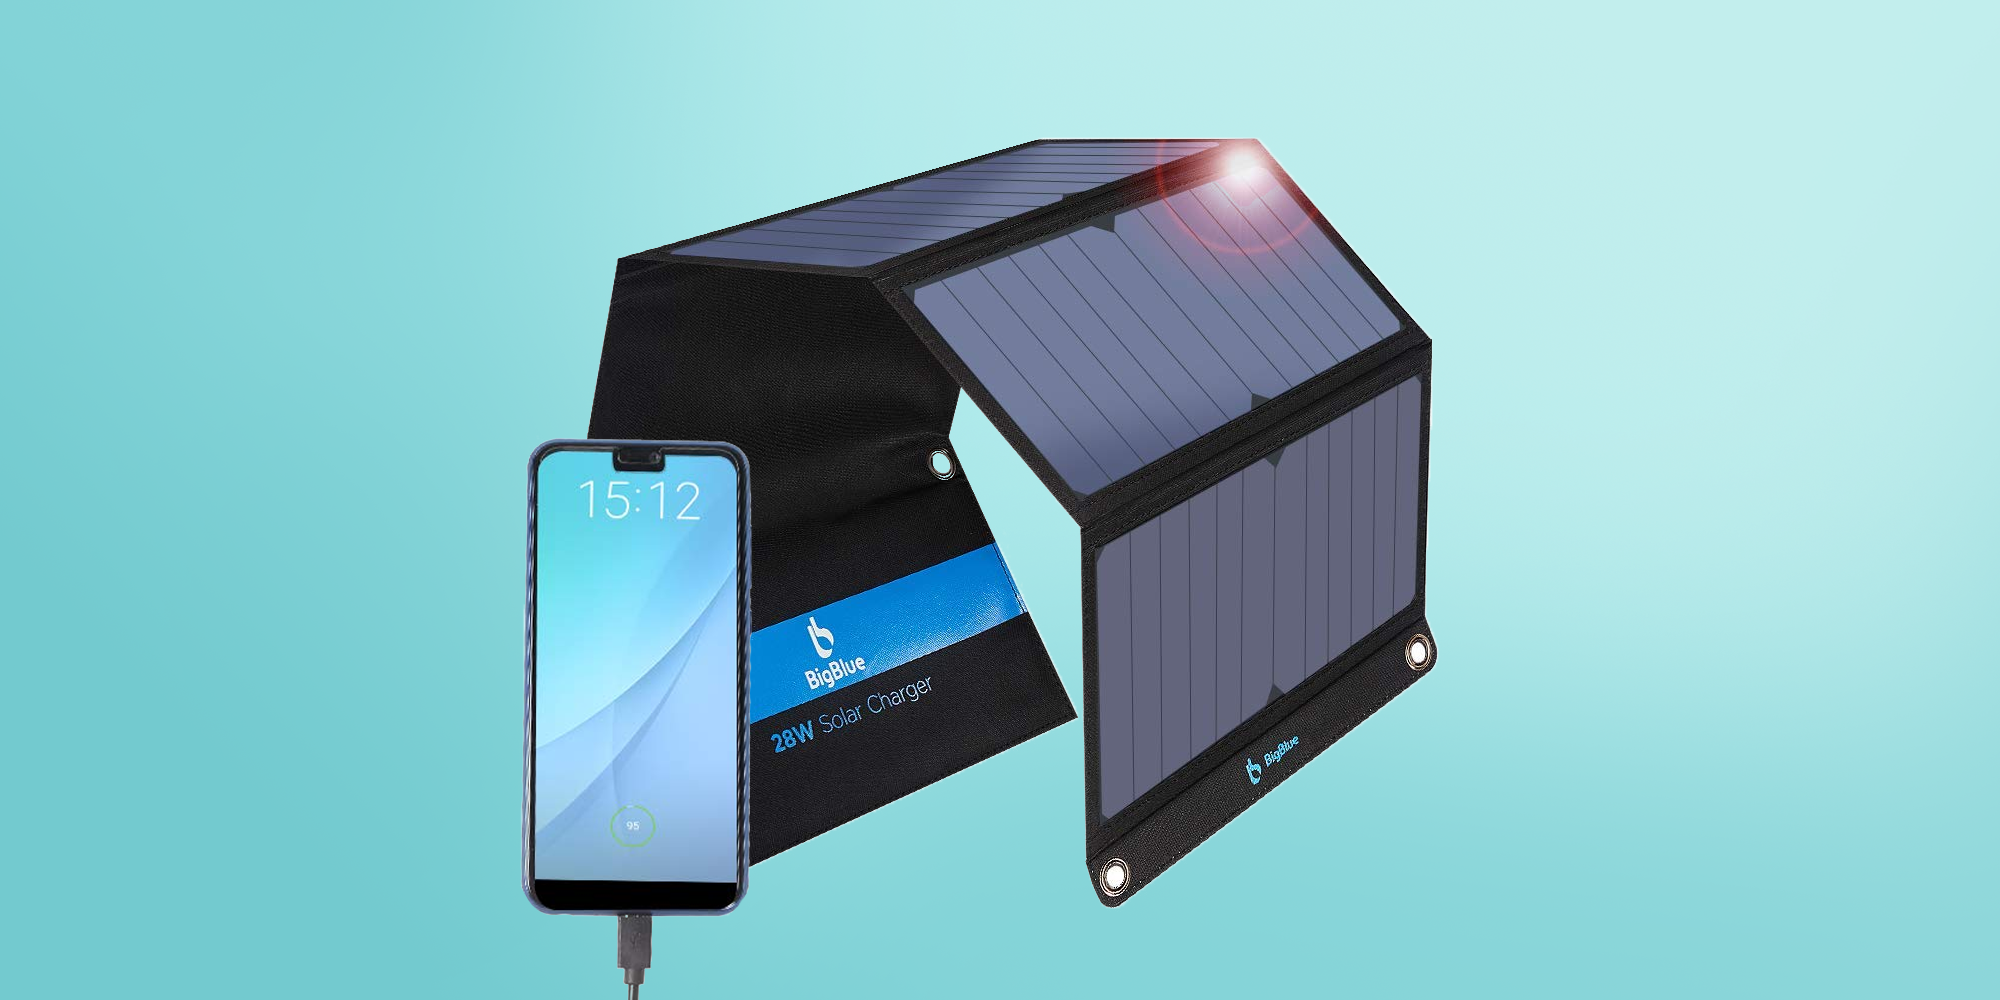 ab88f2c35740 7 Best Solar Phone Chargers of 2019